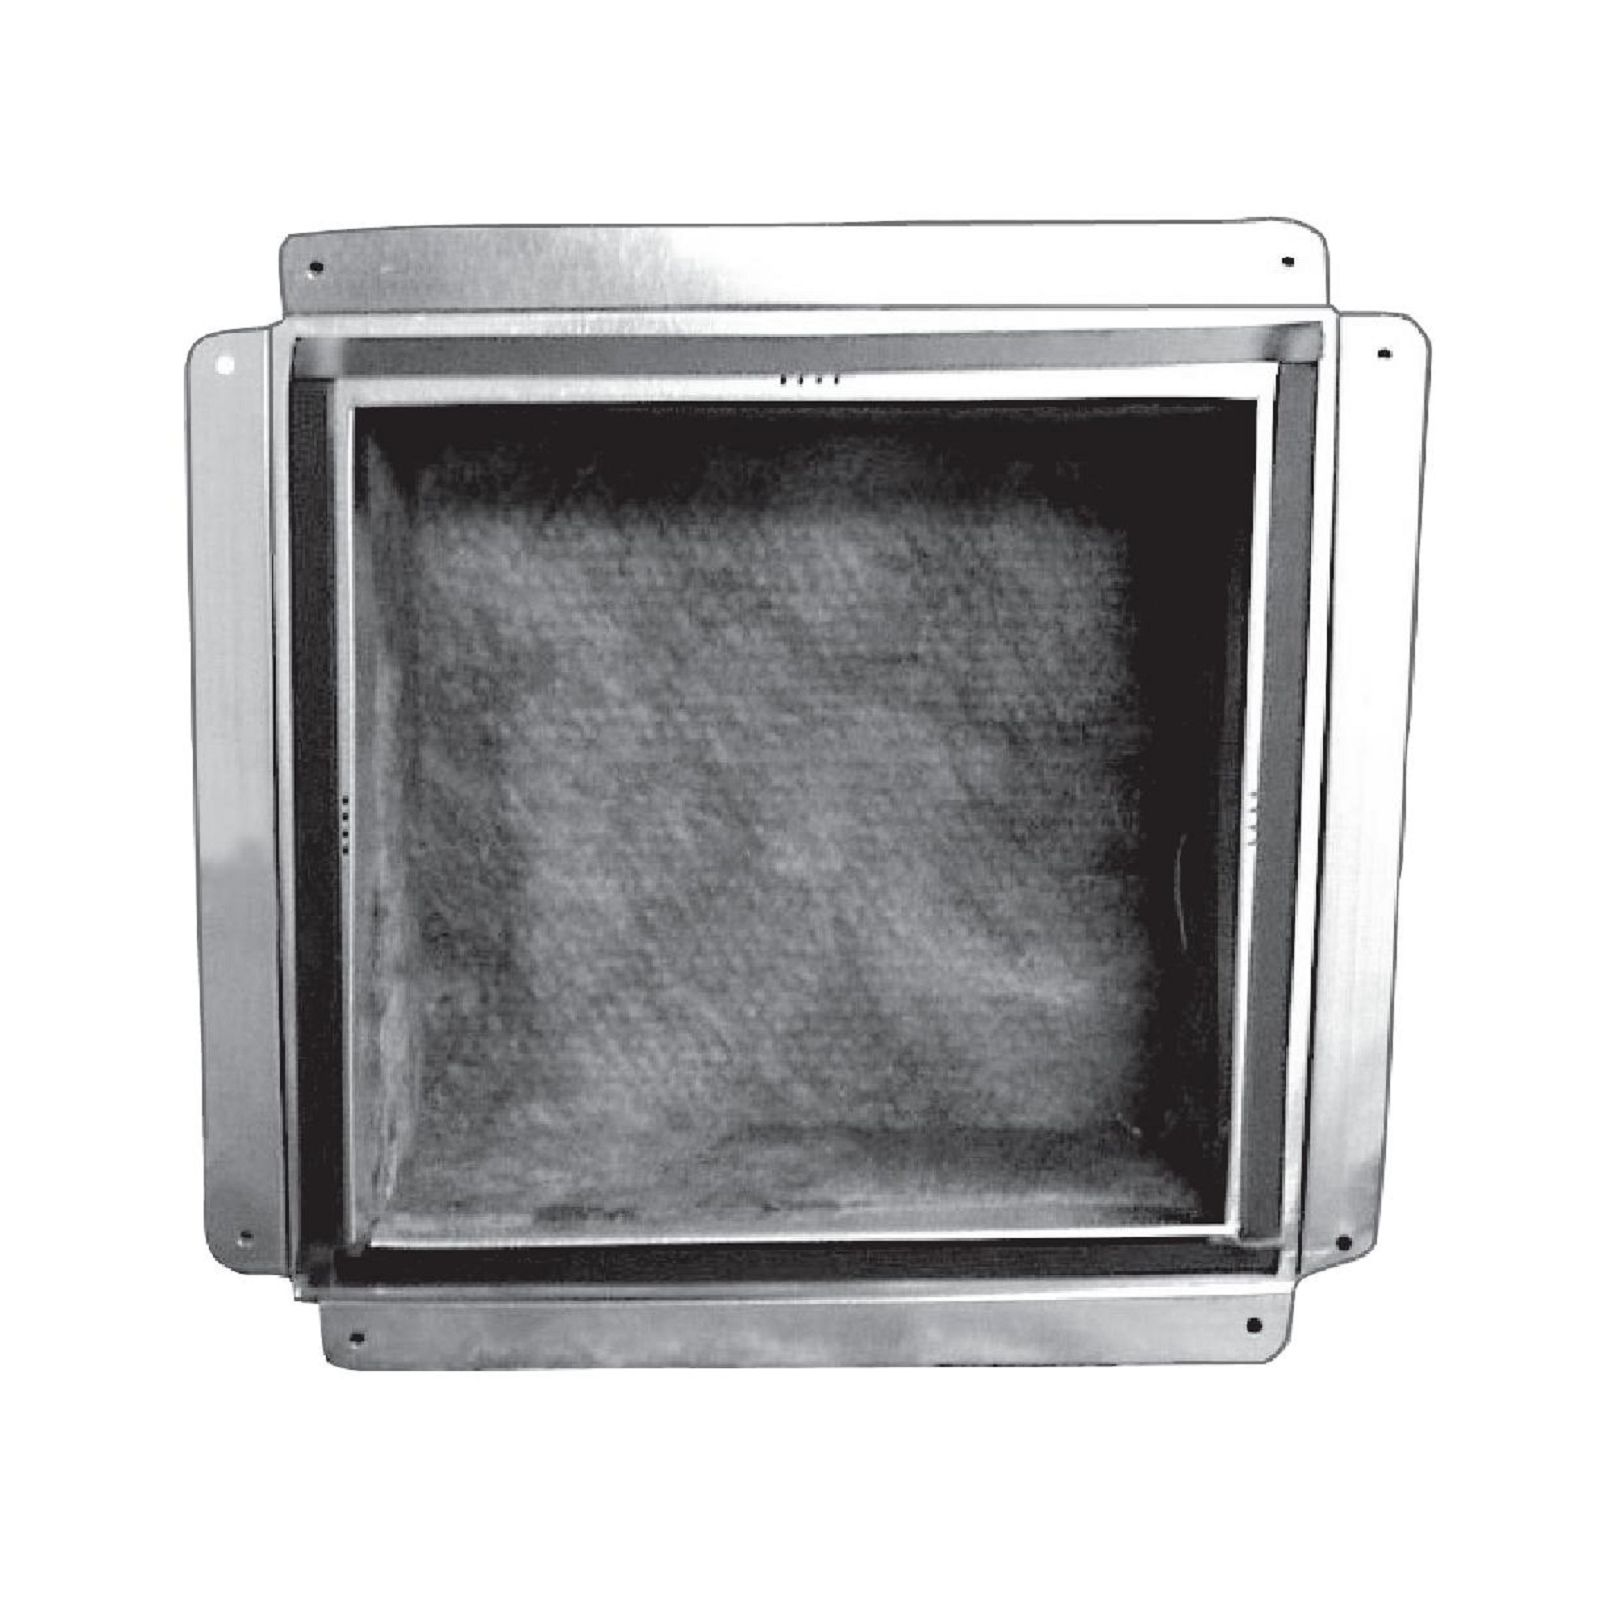 "Snap-Rite 16X16-3800FG - Foil Top Insulated Register Box With Flange and Gasket, 16"" x 16"" - R6"